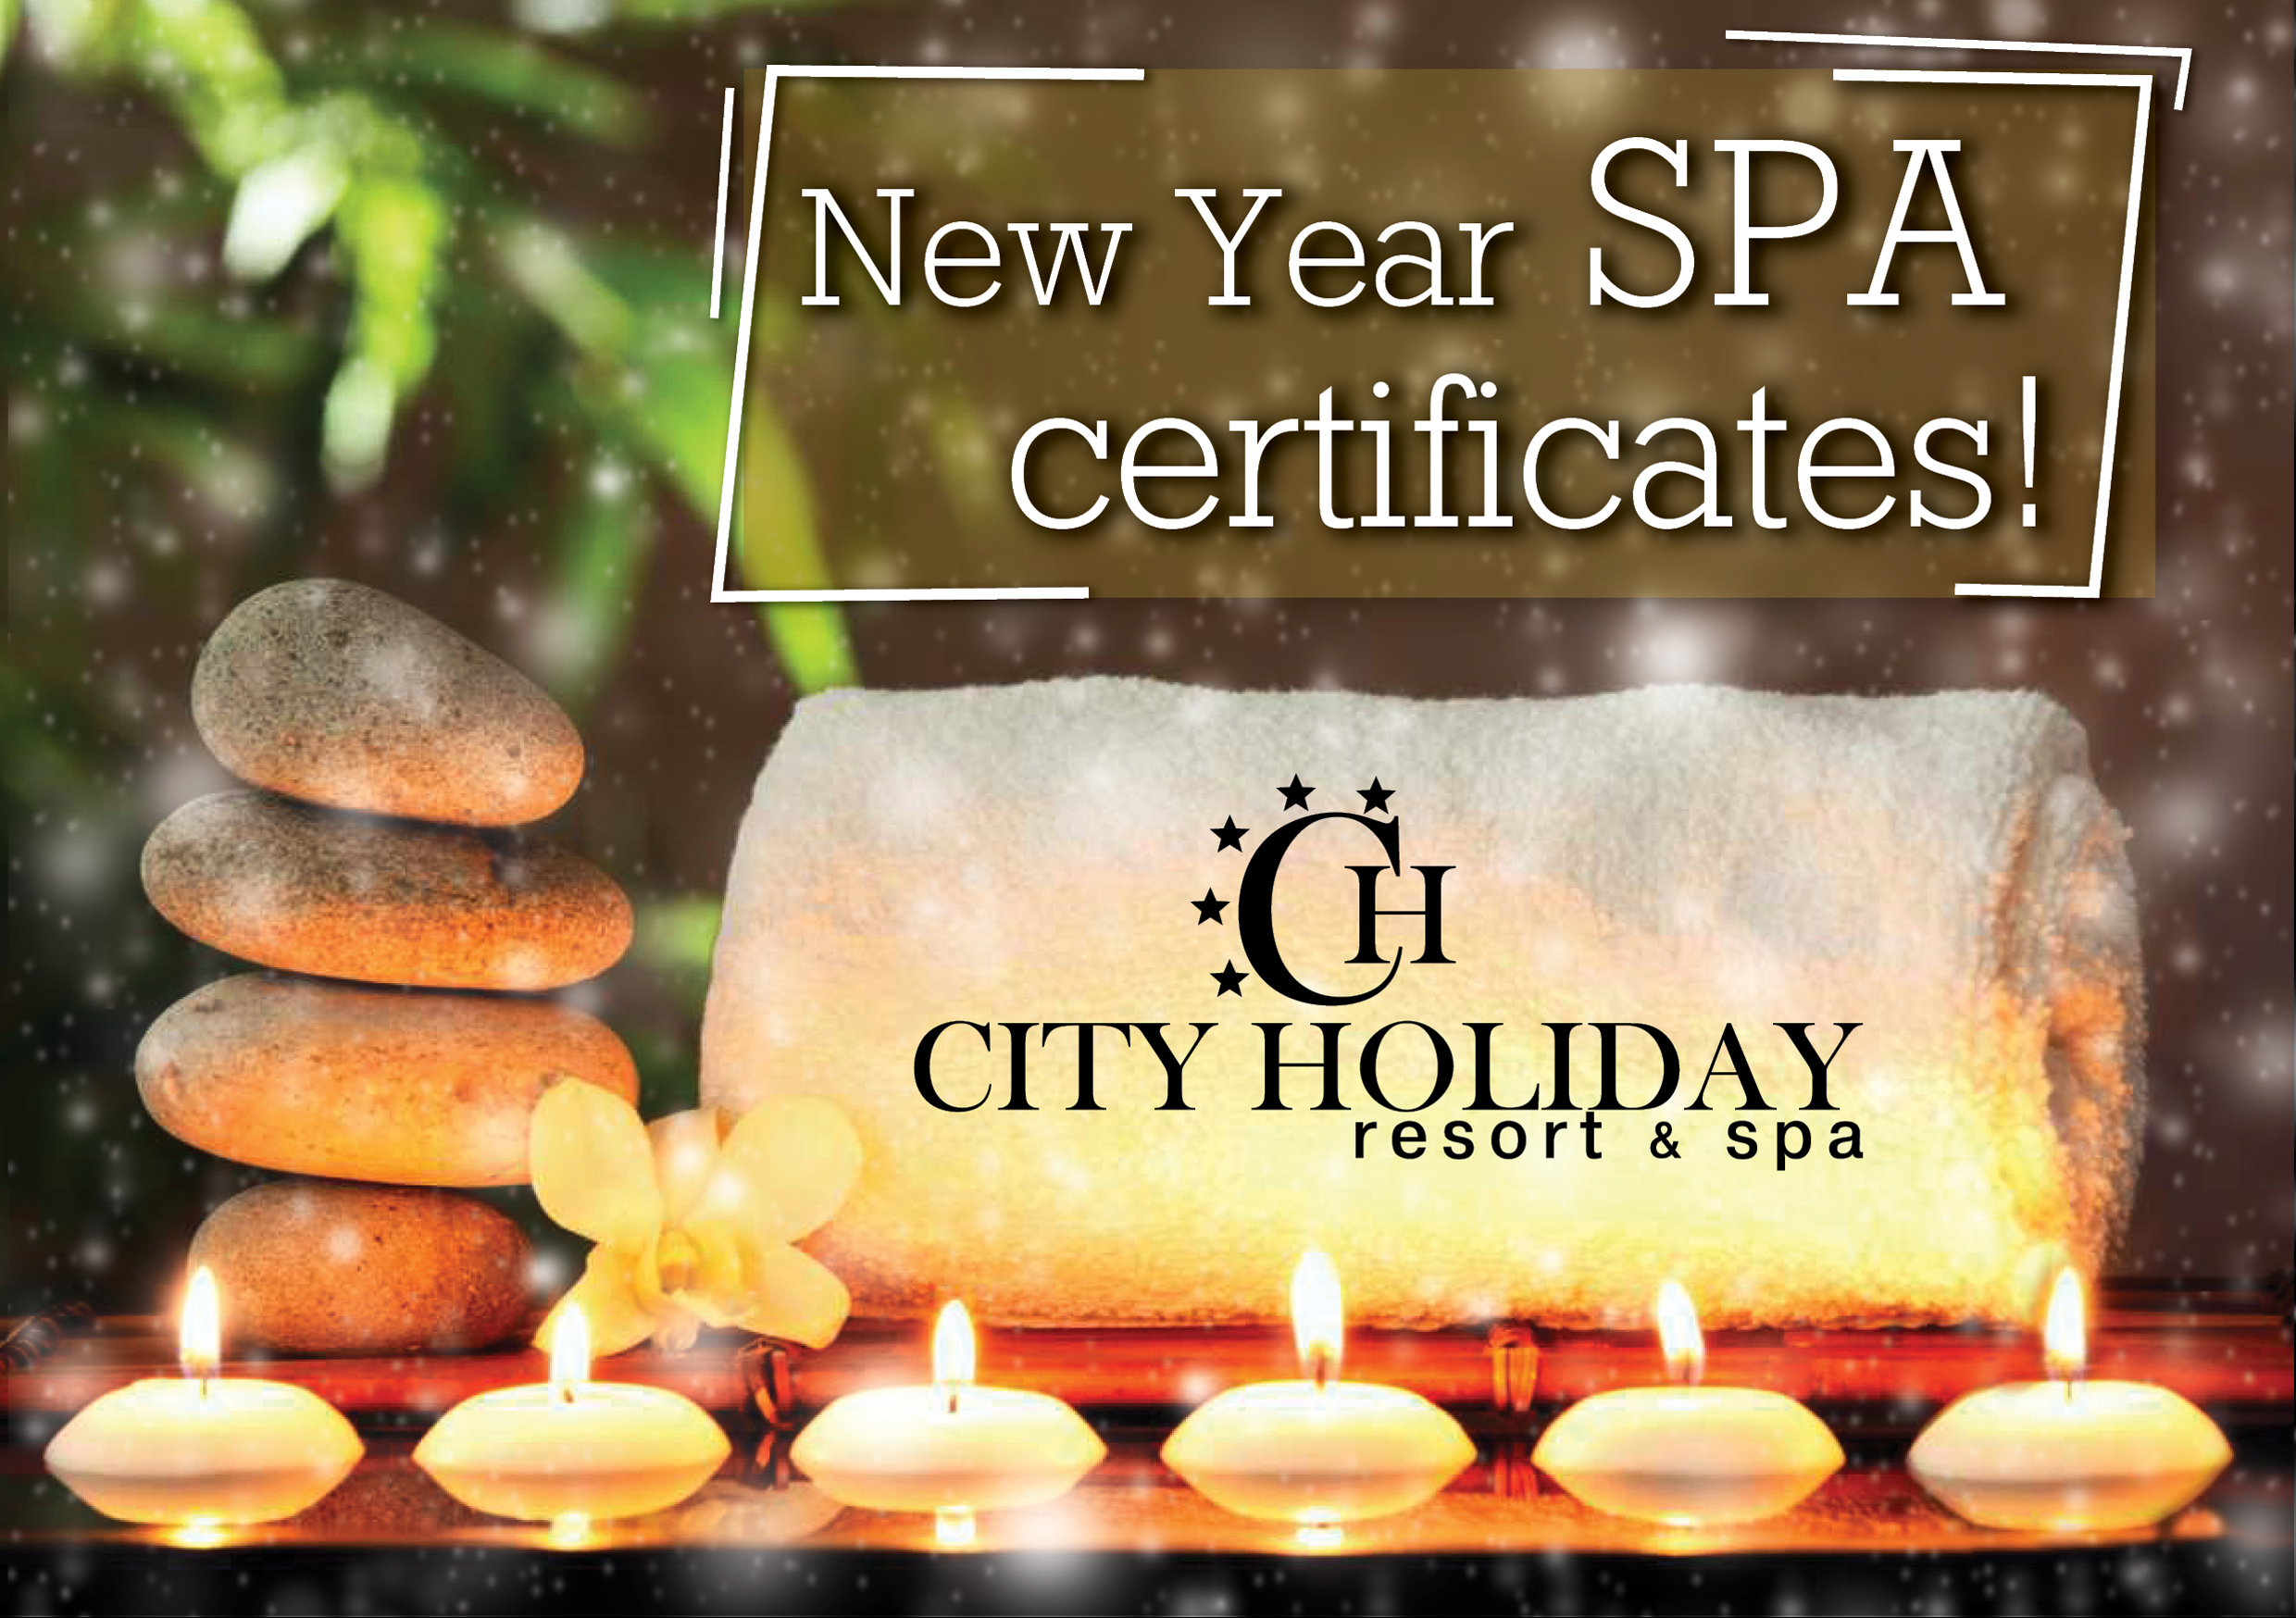 New Year SPA certificates!